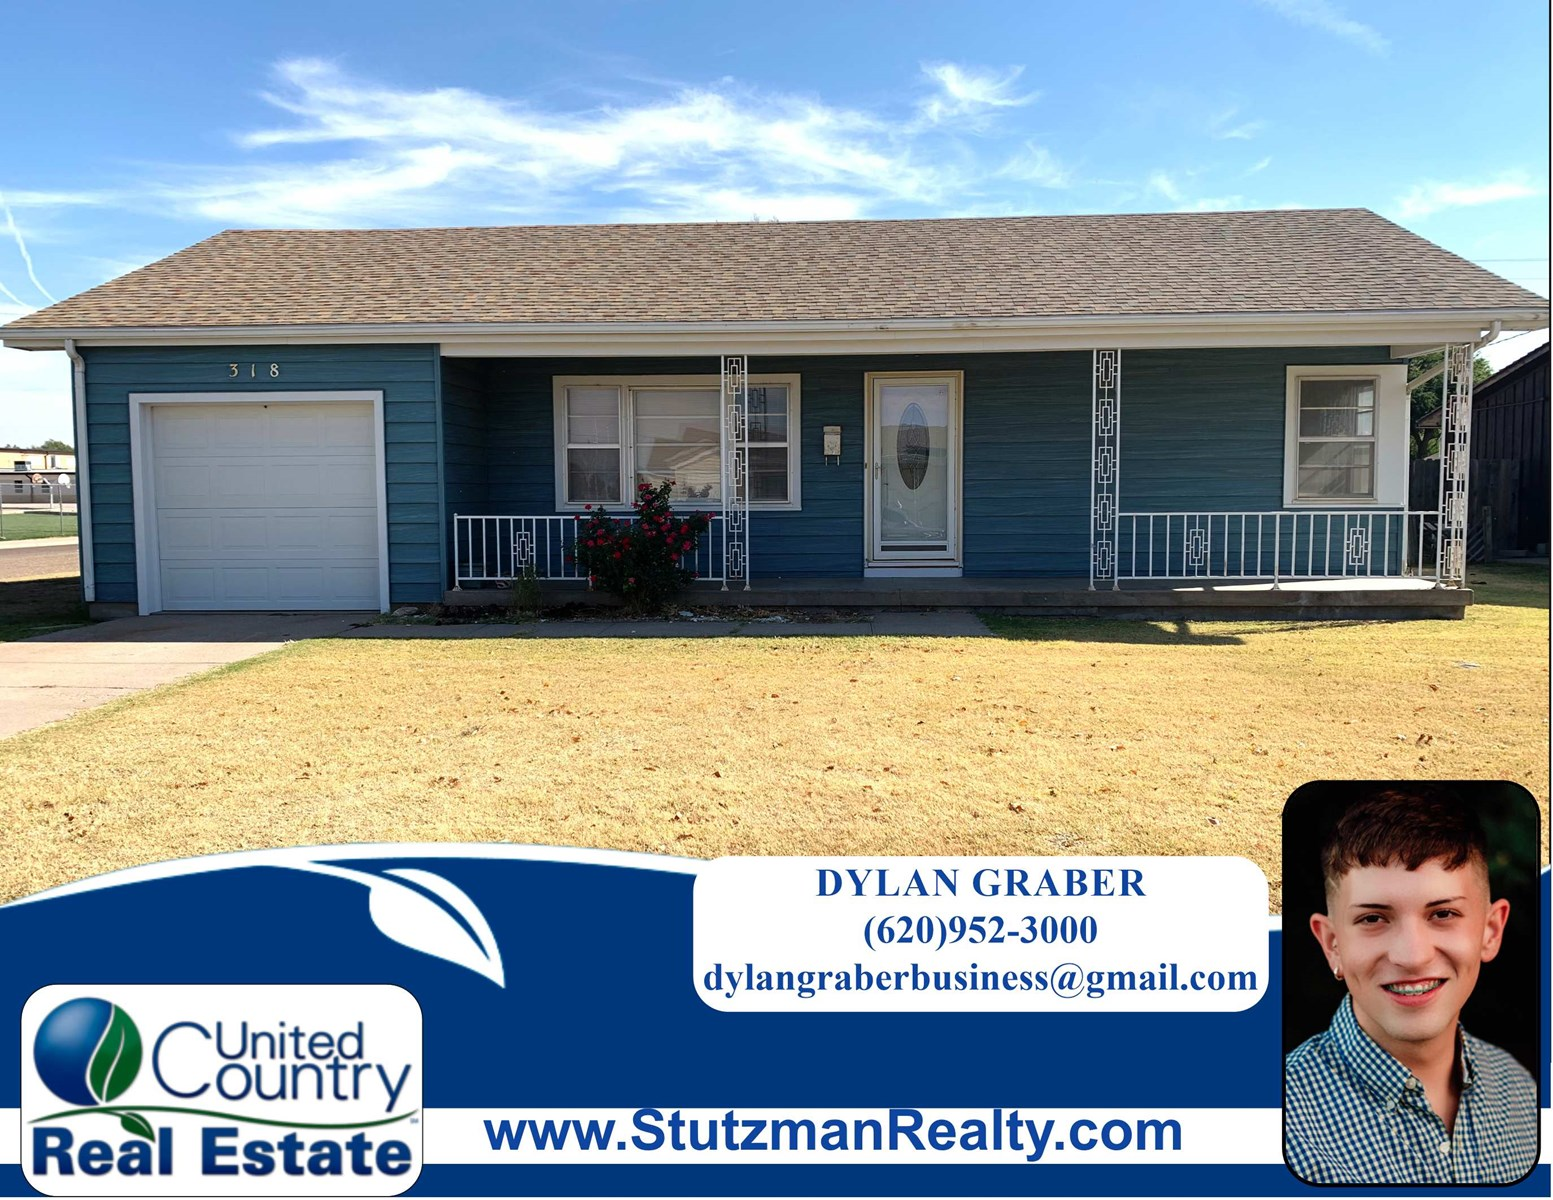 FIVE BEDROOM HOME FOR SALE CLOSE TO SCHOOLS IN ULYSSES, KS